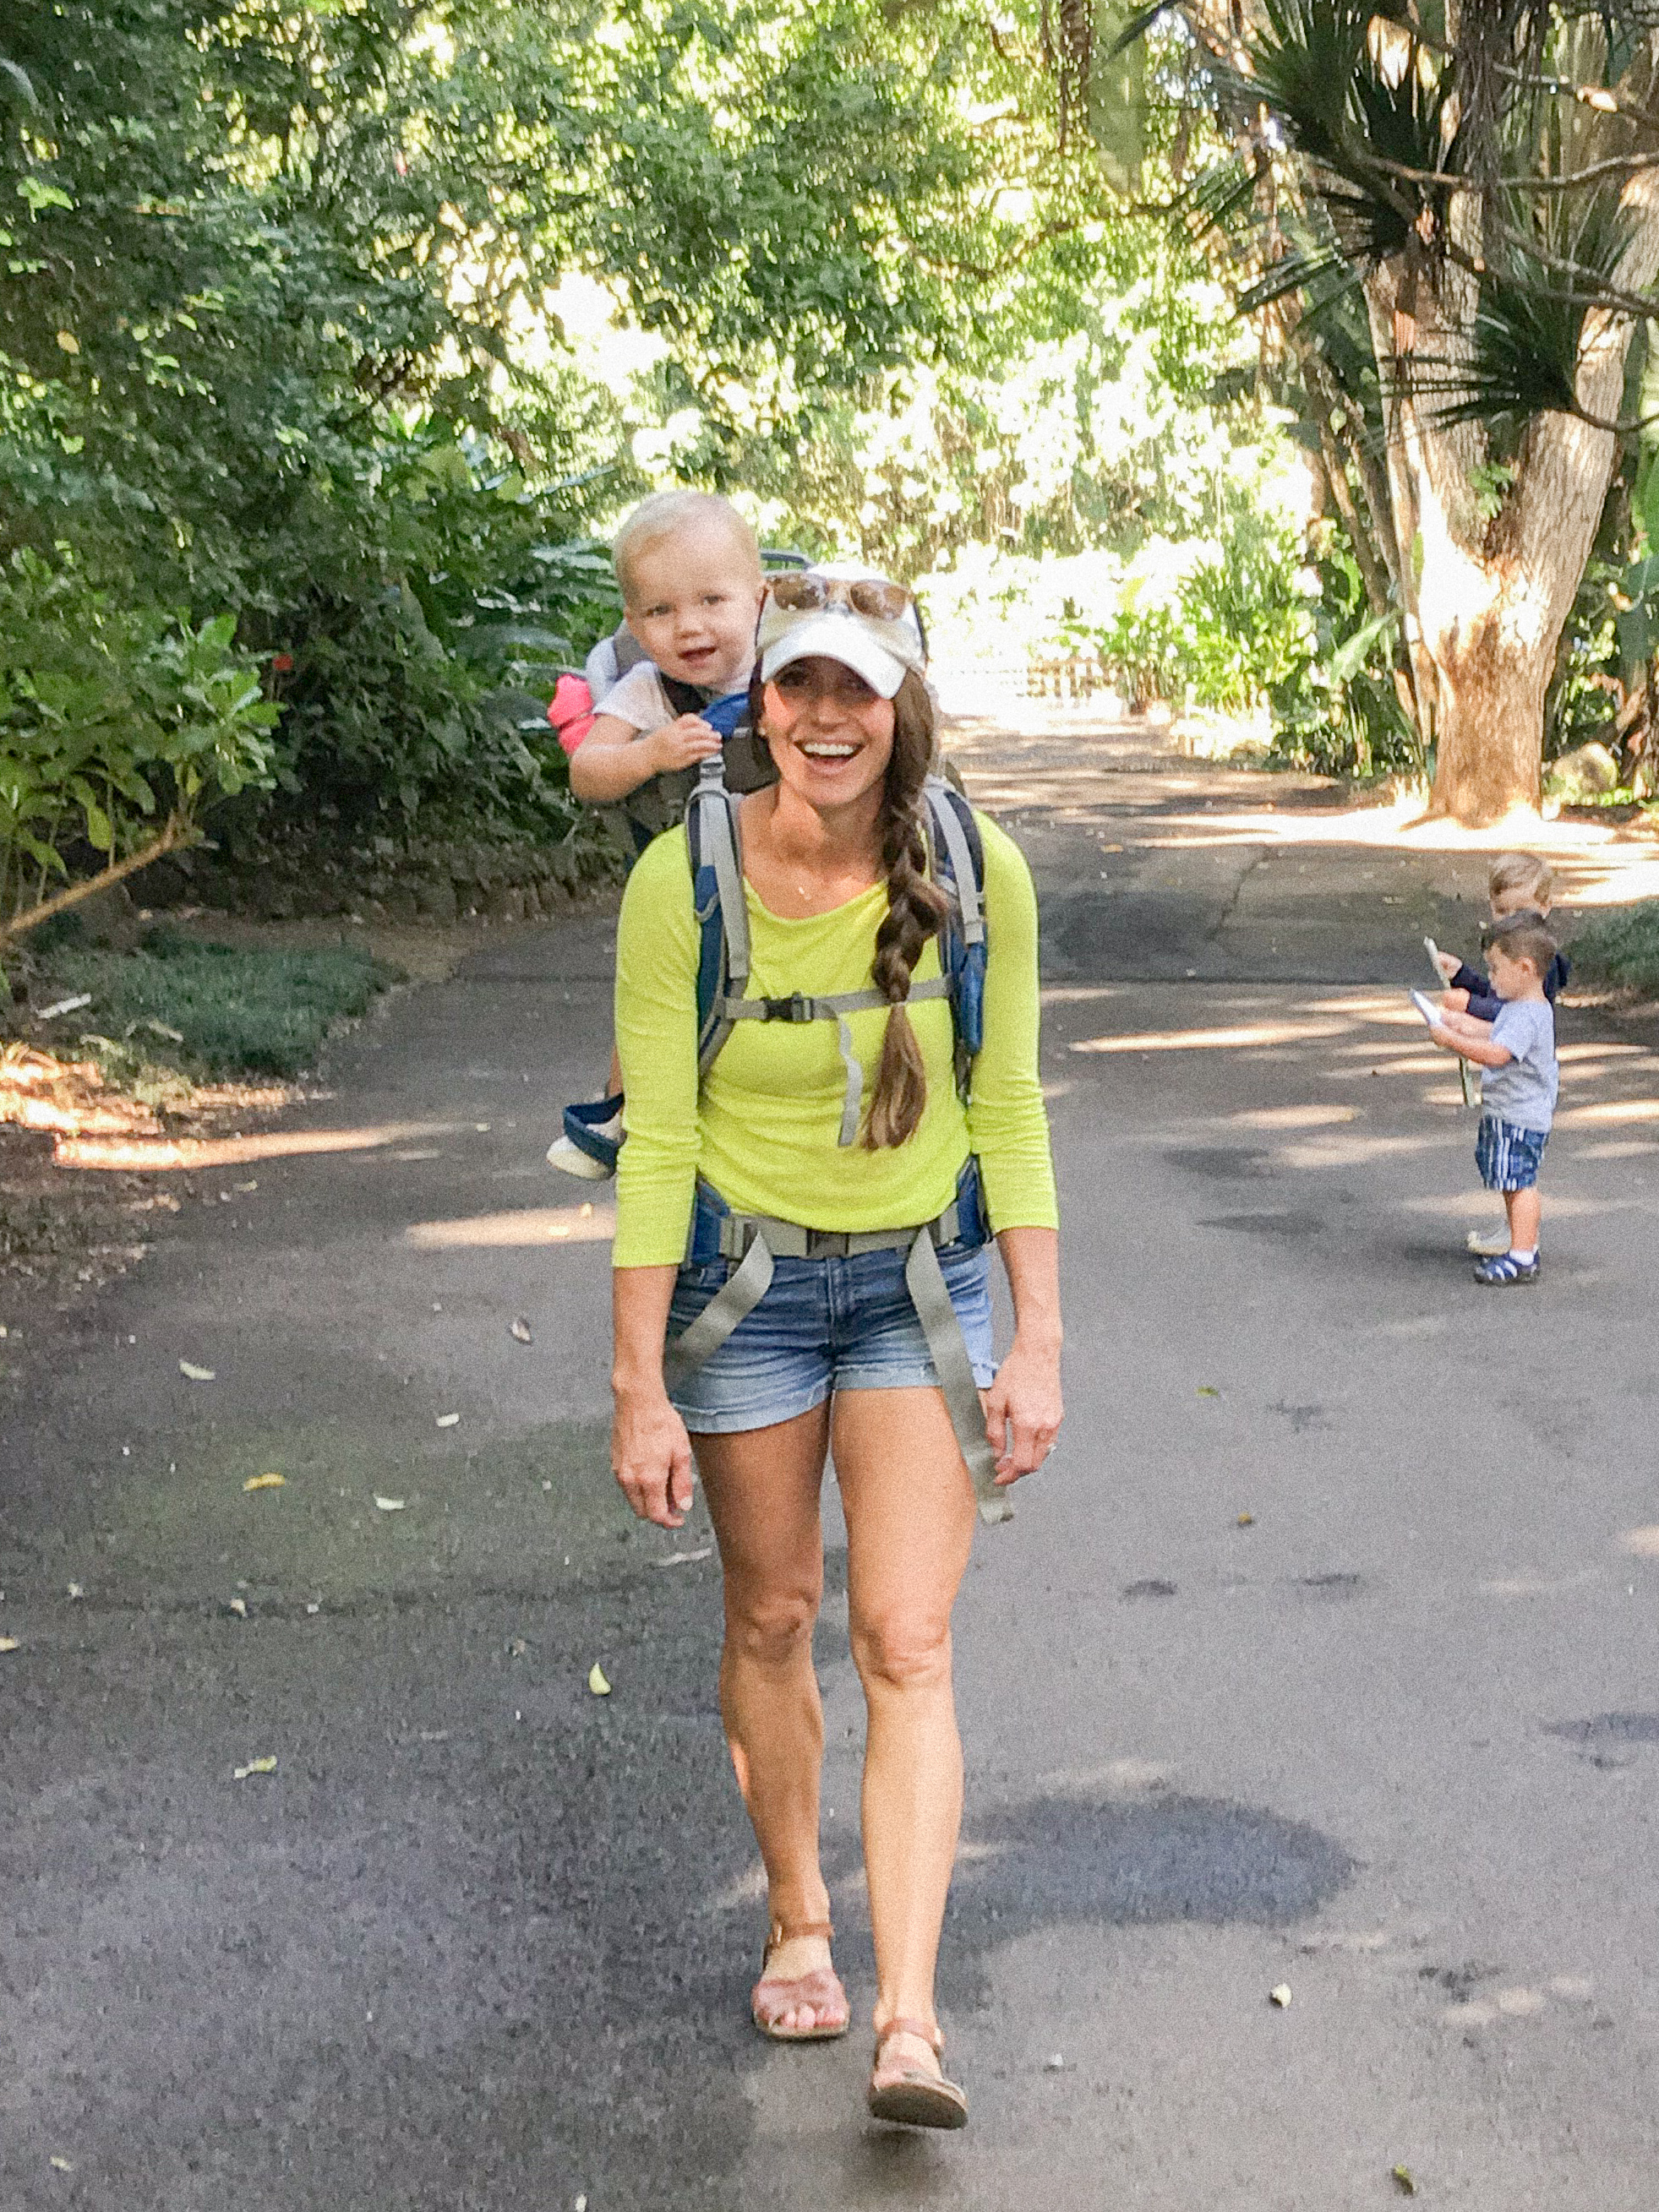 Hiking in Hawaii - Best Hikes in Hawaii - Hiking in Honolulu Hawaii - Best Trails in Hawaii - Hawaii Hiking Trails - Hawaii Hikes Oahu - Waimea Valley Trail Oahu - Kid Friendly Hikes - Hiking with Kids Hawaii - Waimea Falls